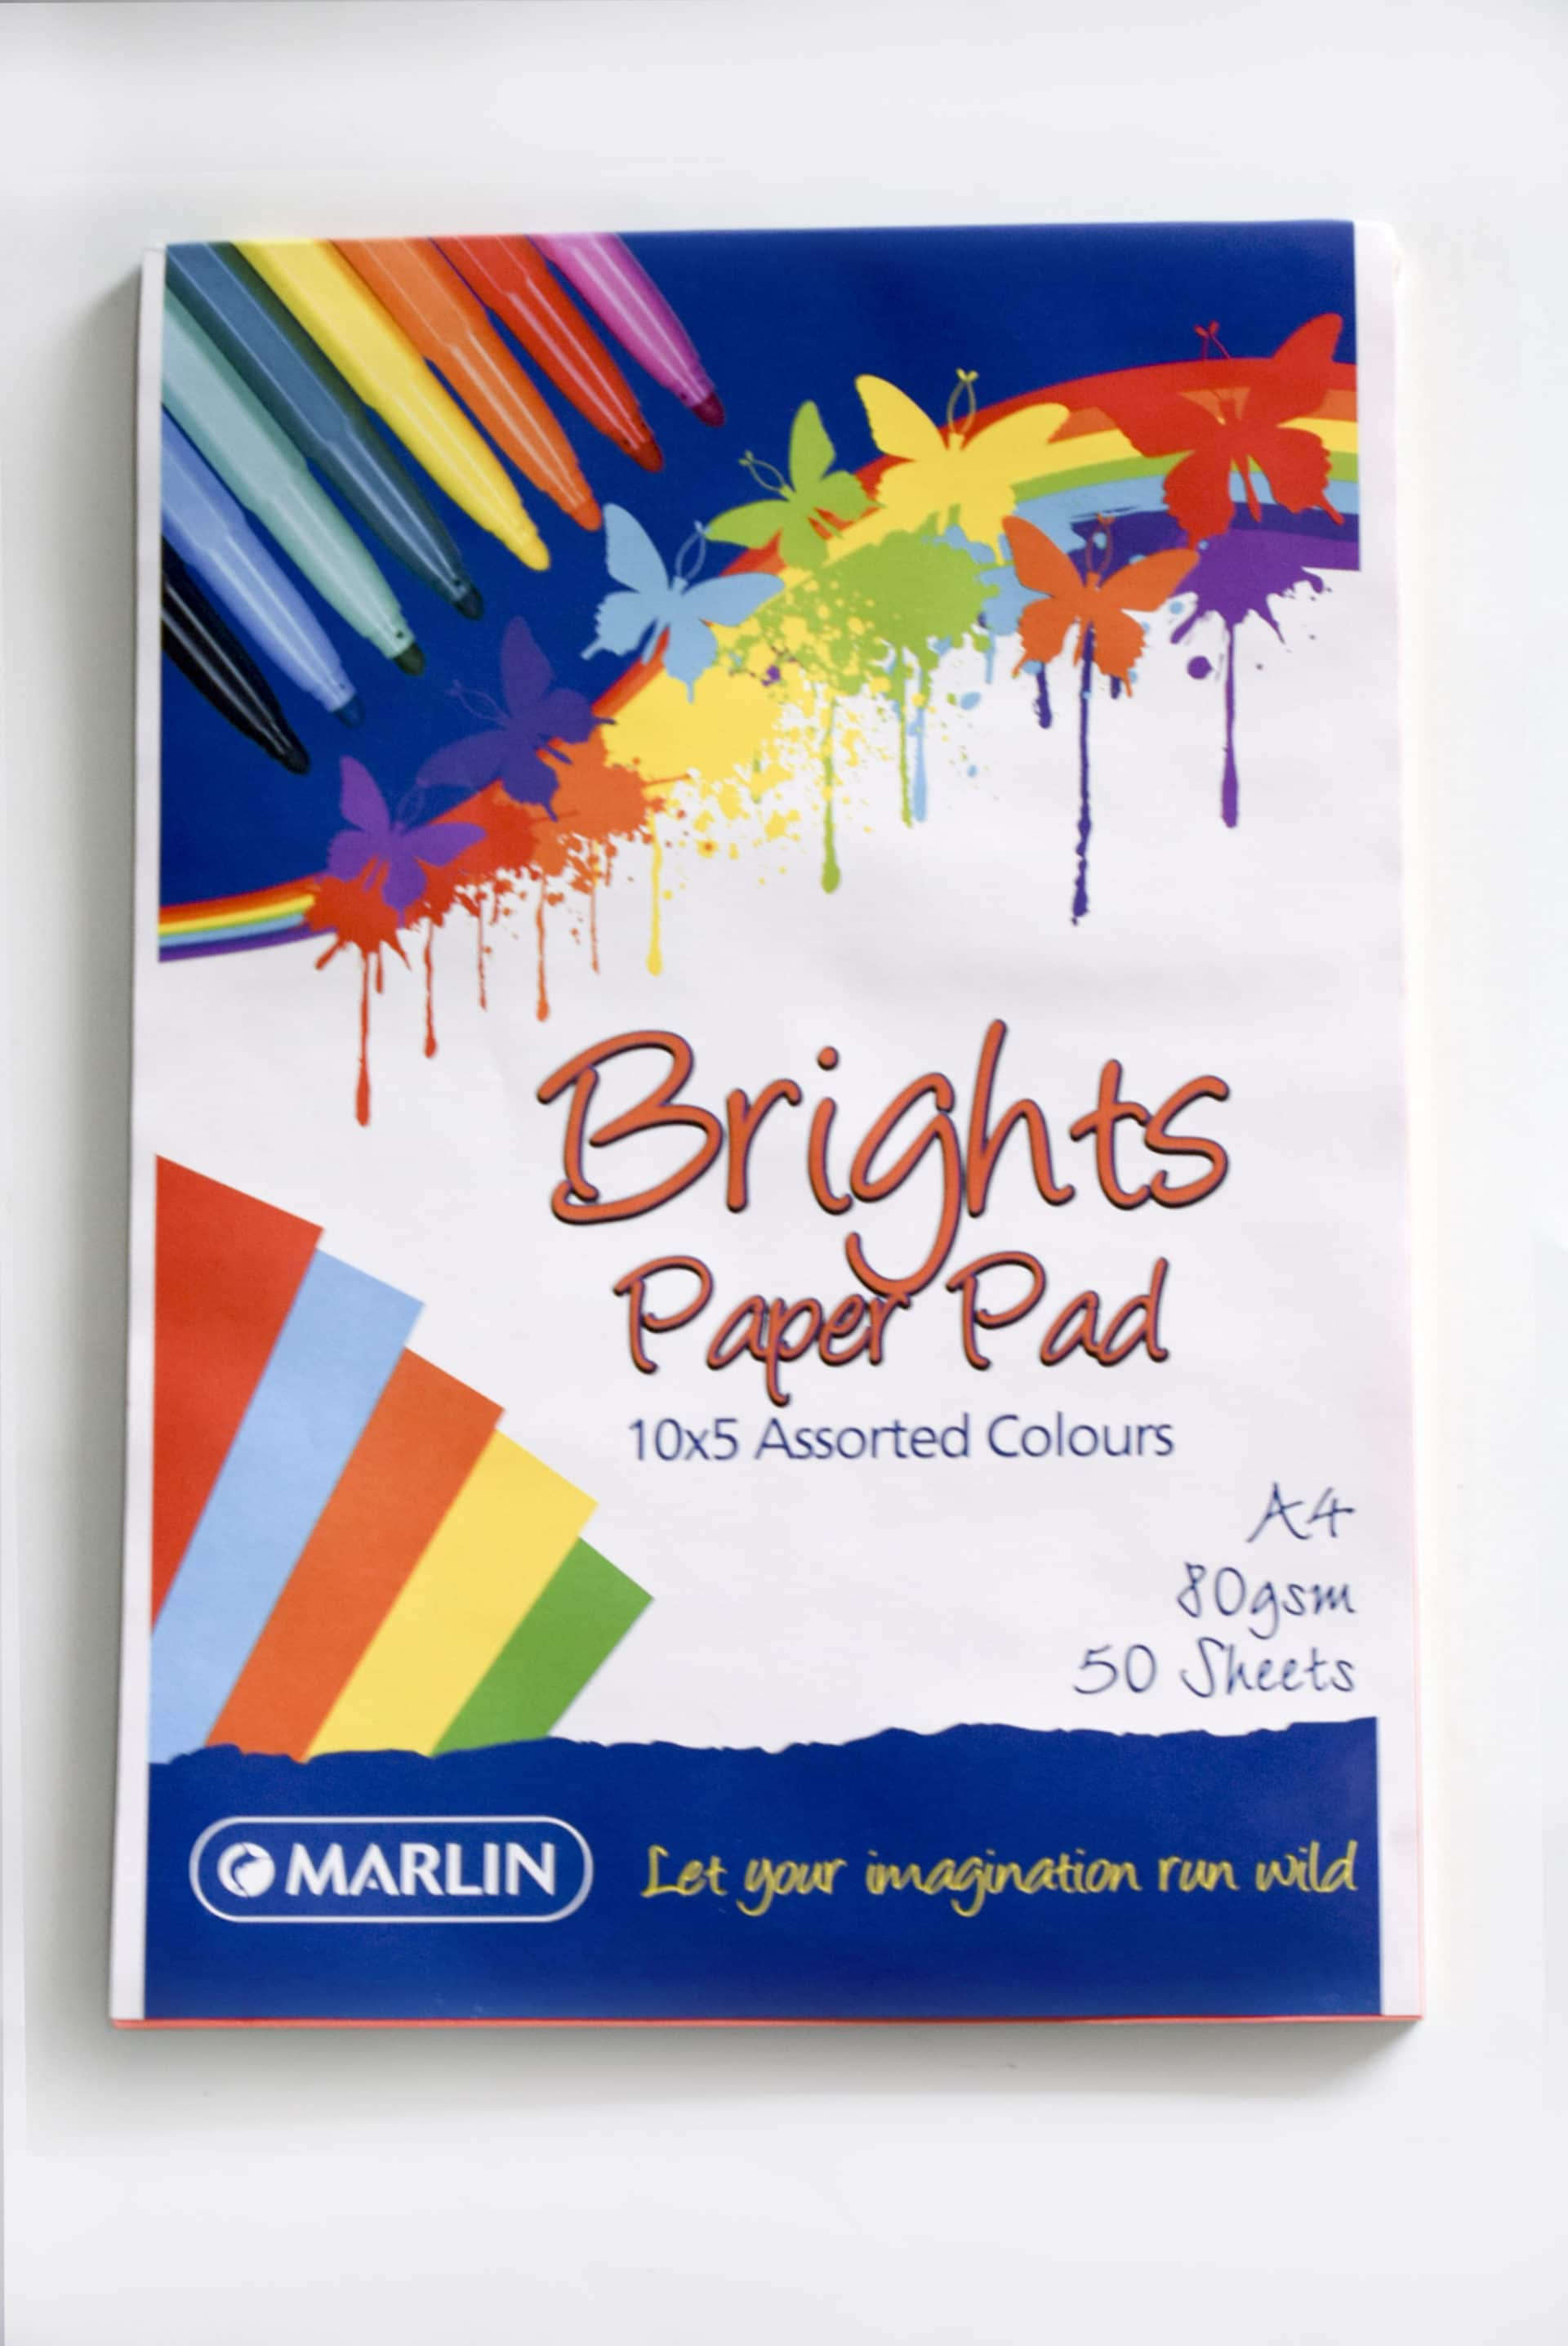 Bright Paper Pad 50's Marlin Assorted Colours 1